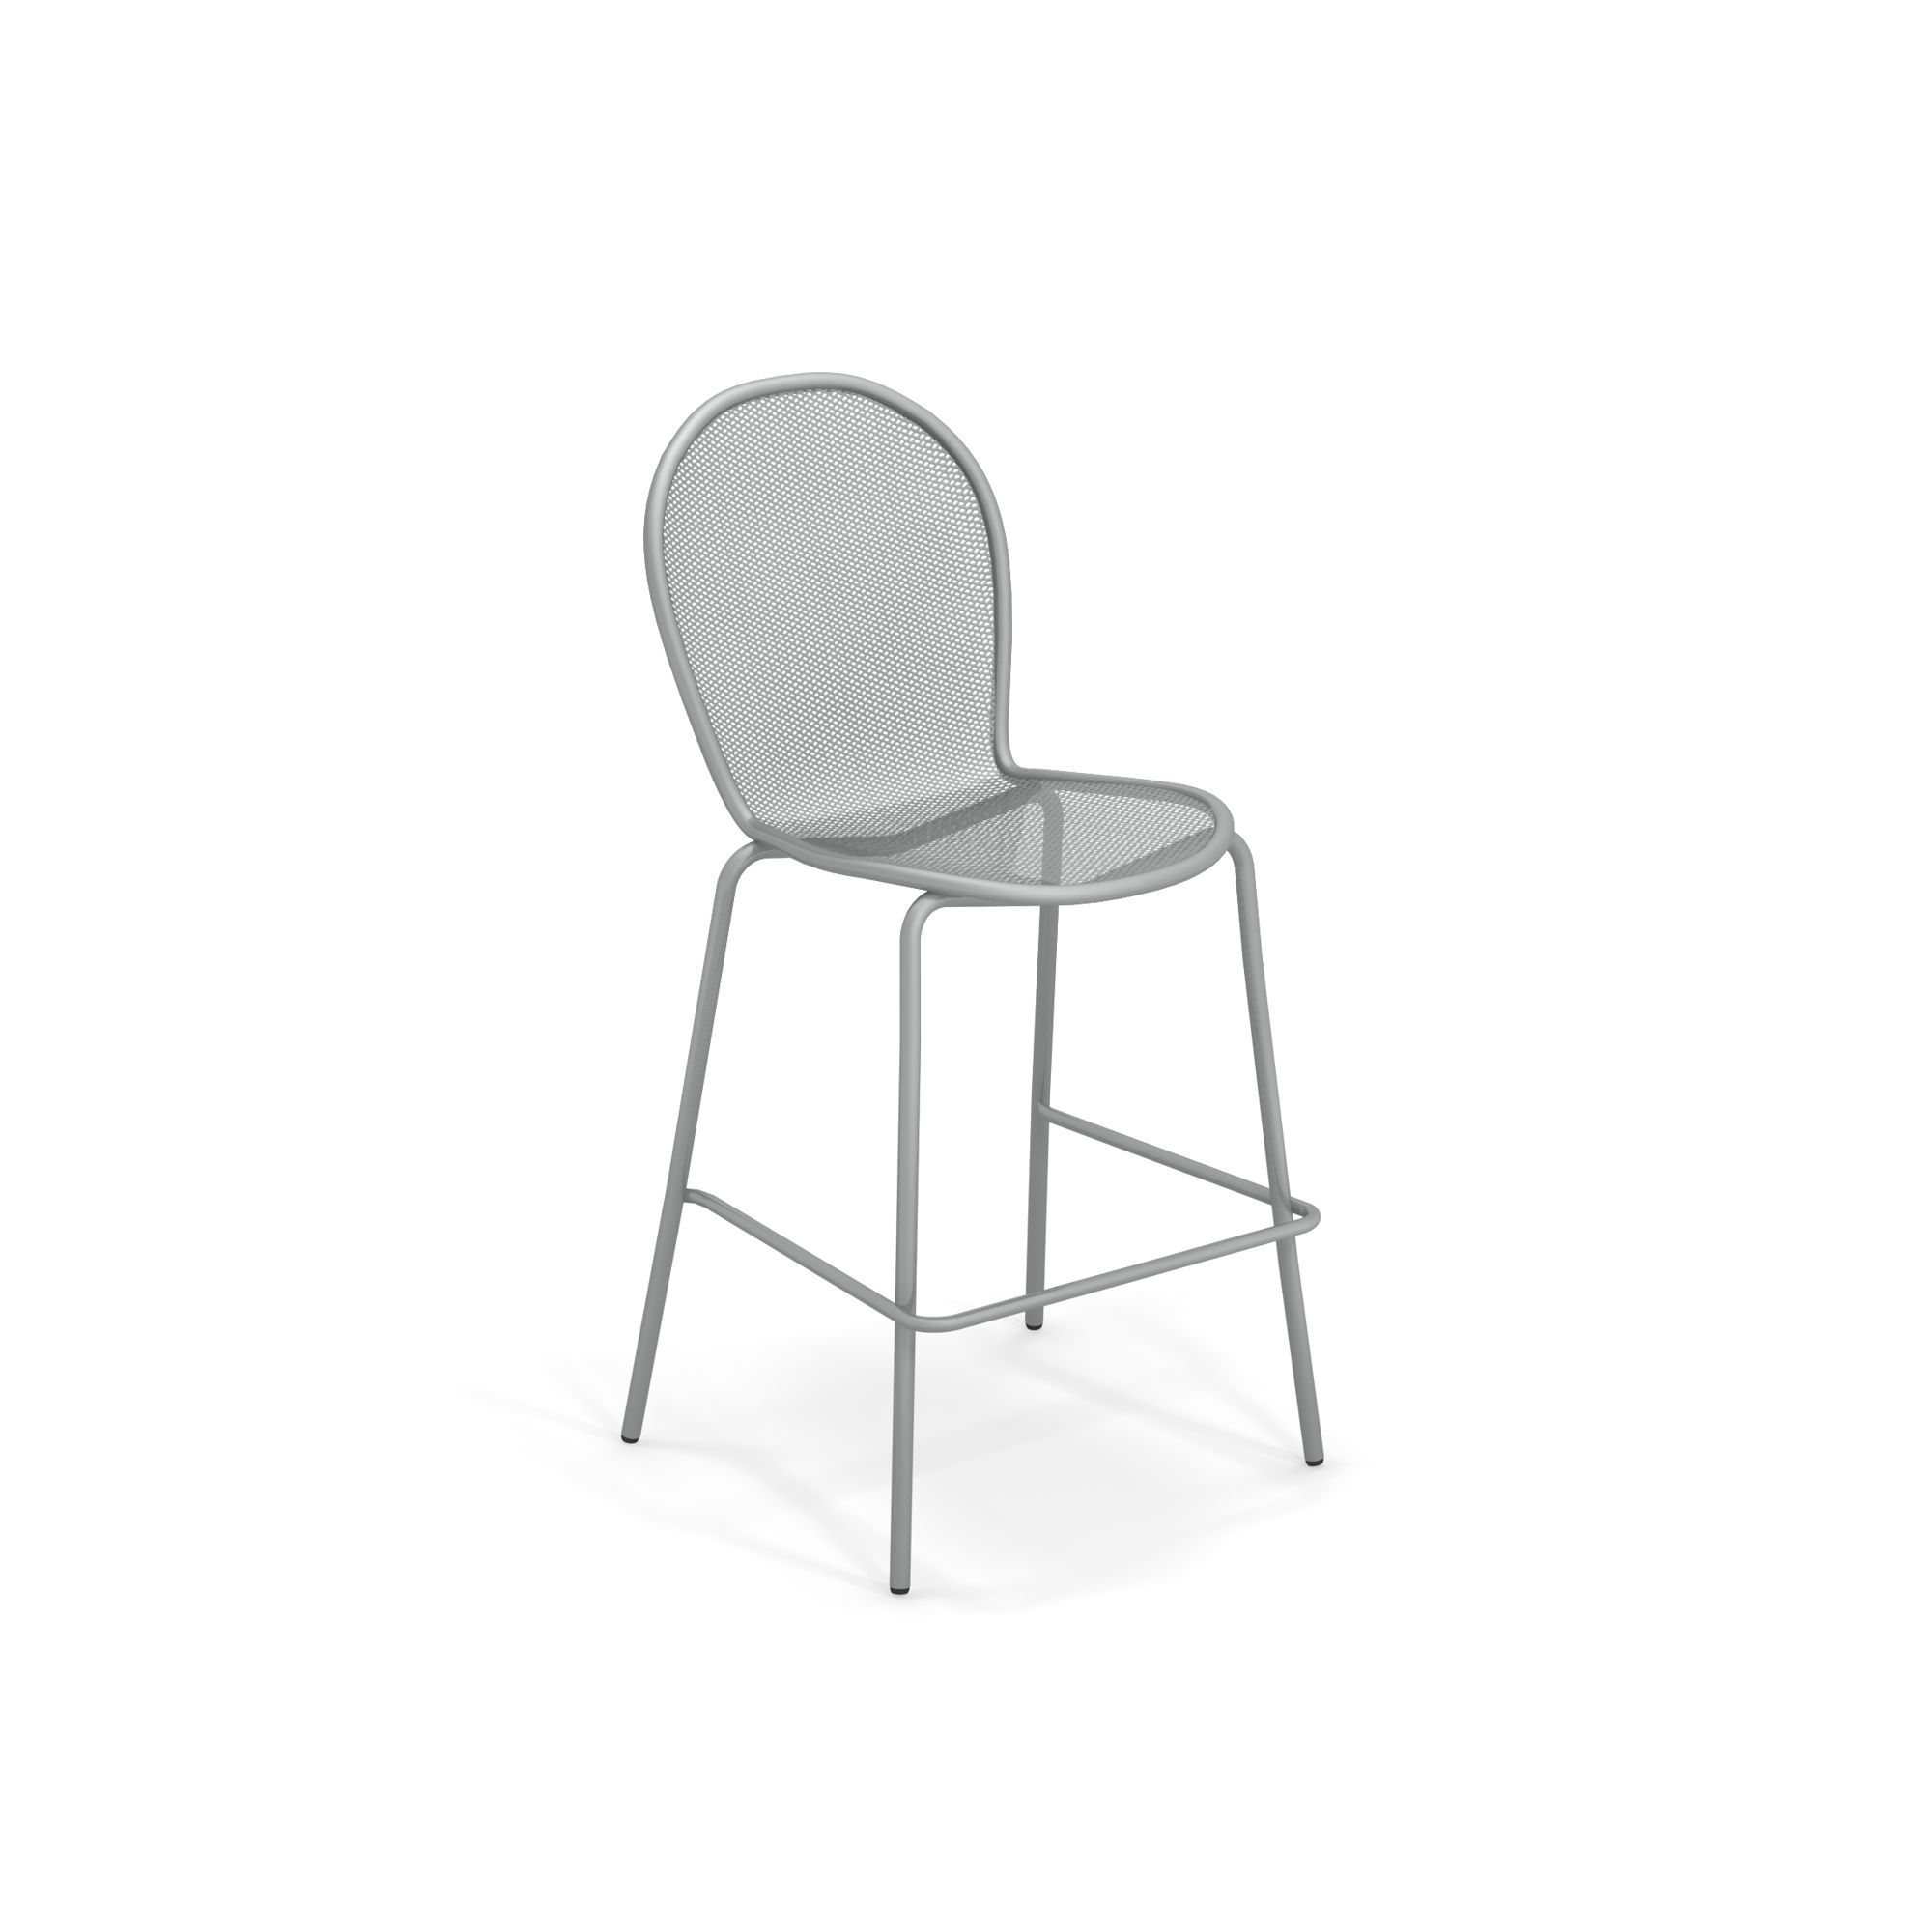 emuamericas, llc 128-20 bar stool, stacking, outdoor